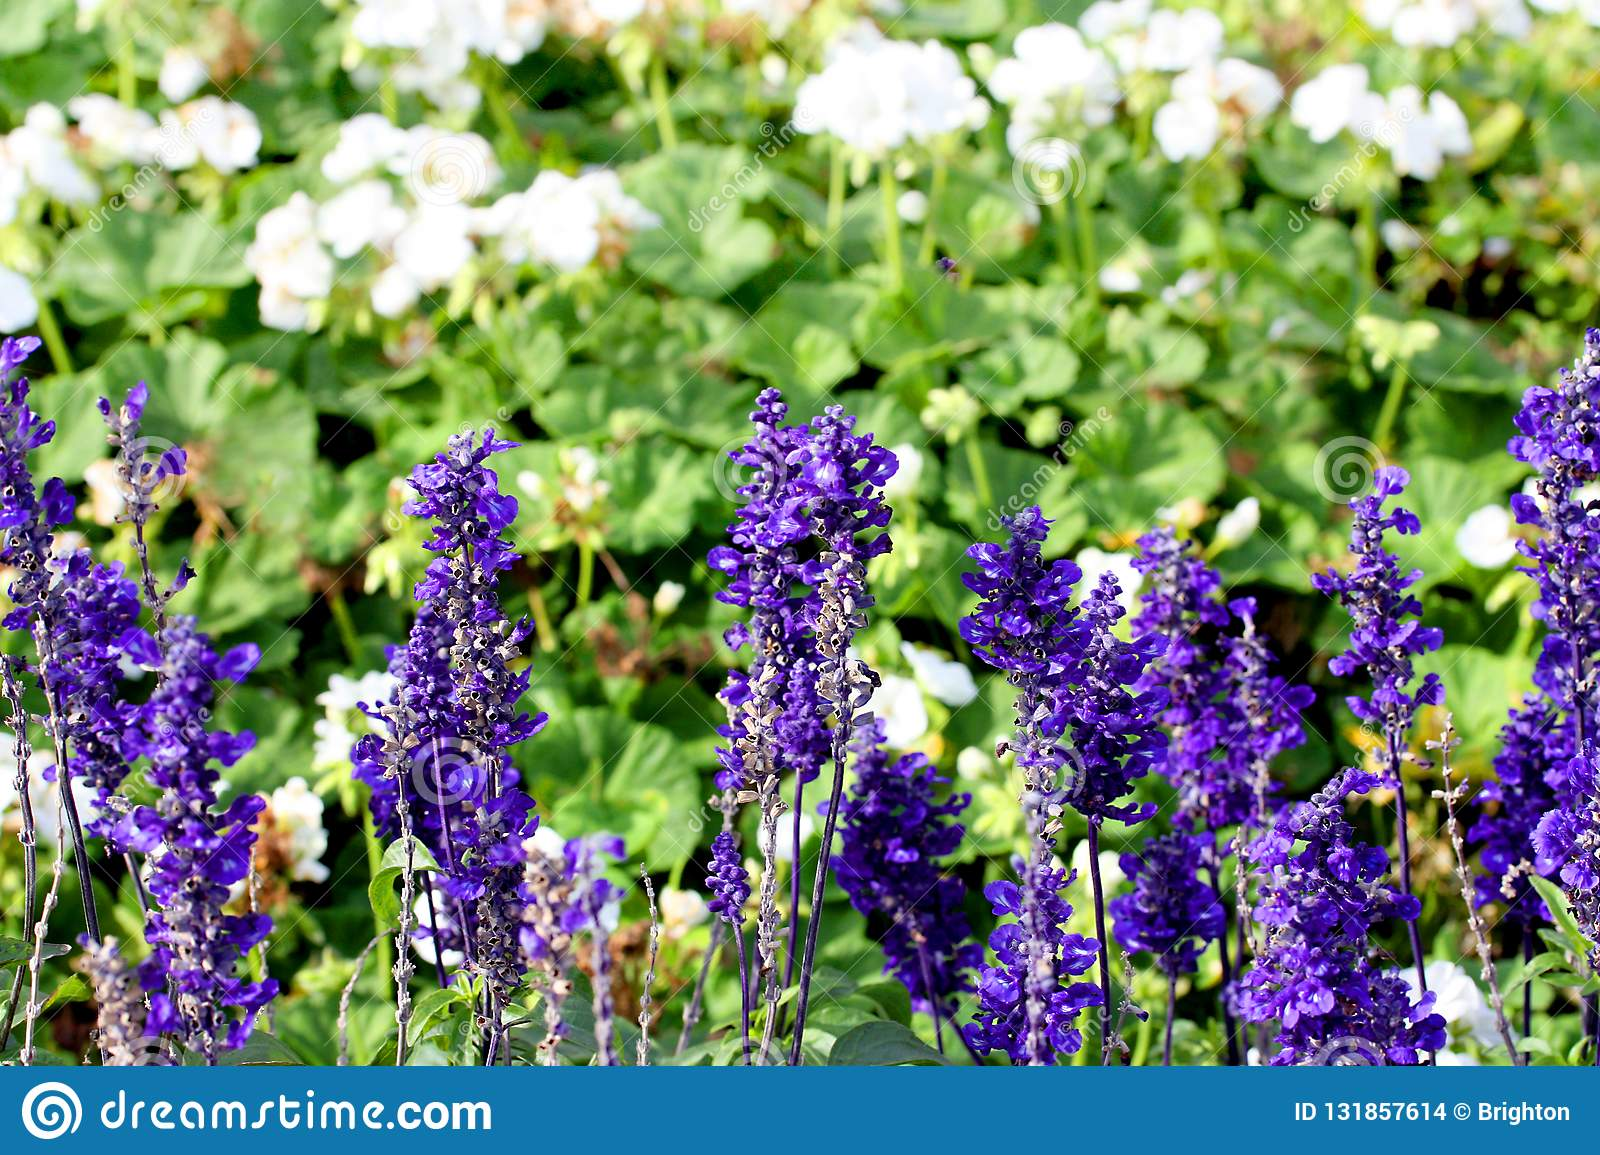 A closeup of lavender plants in flowerbed.